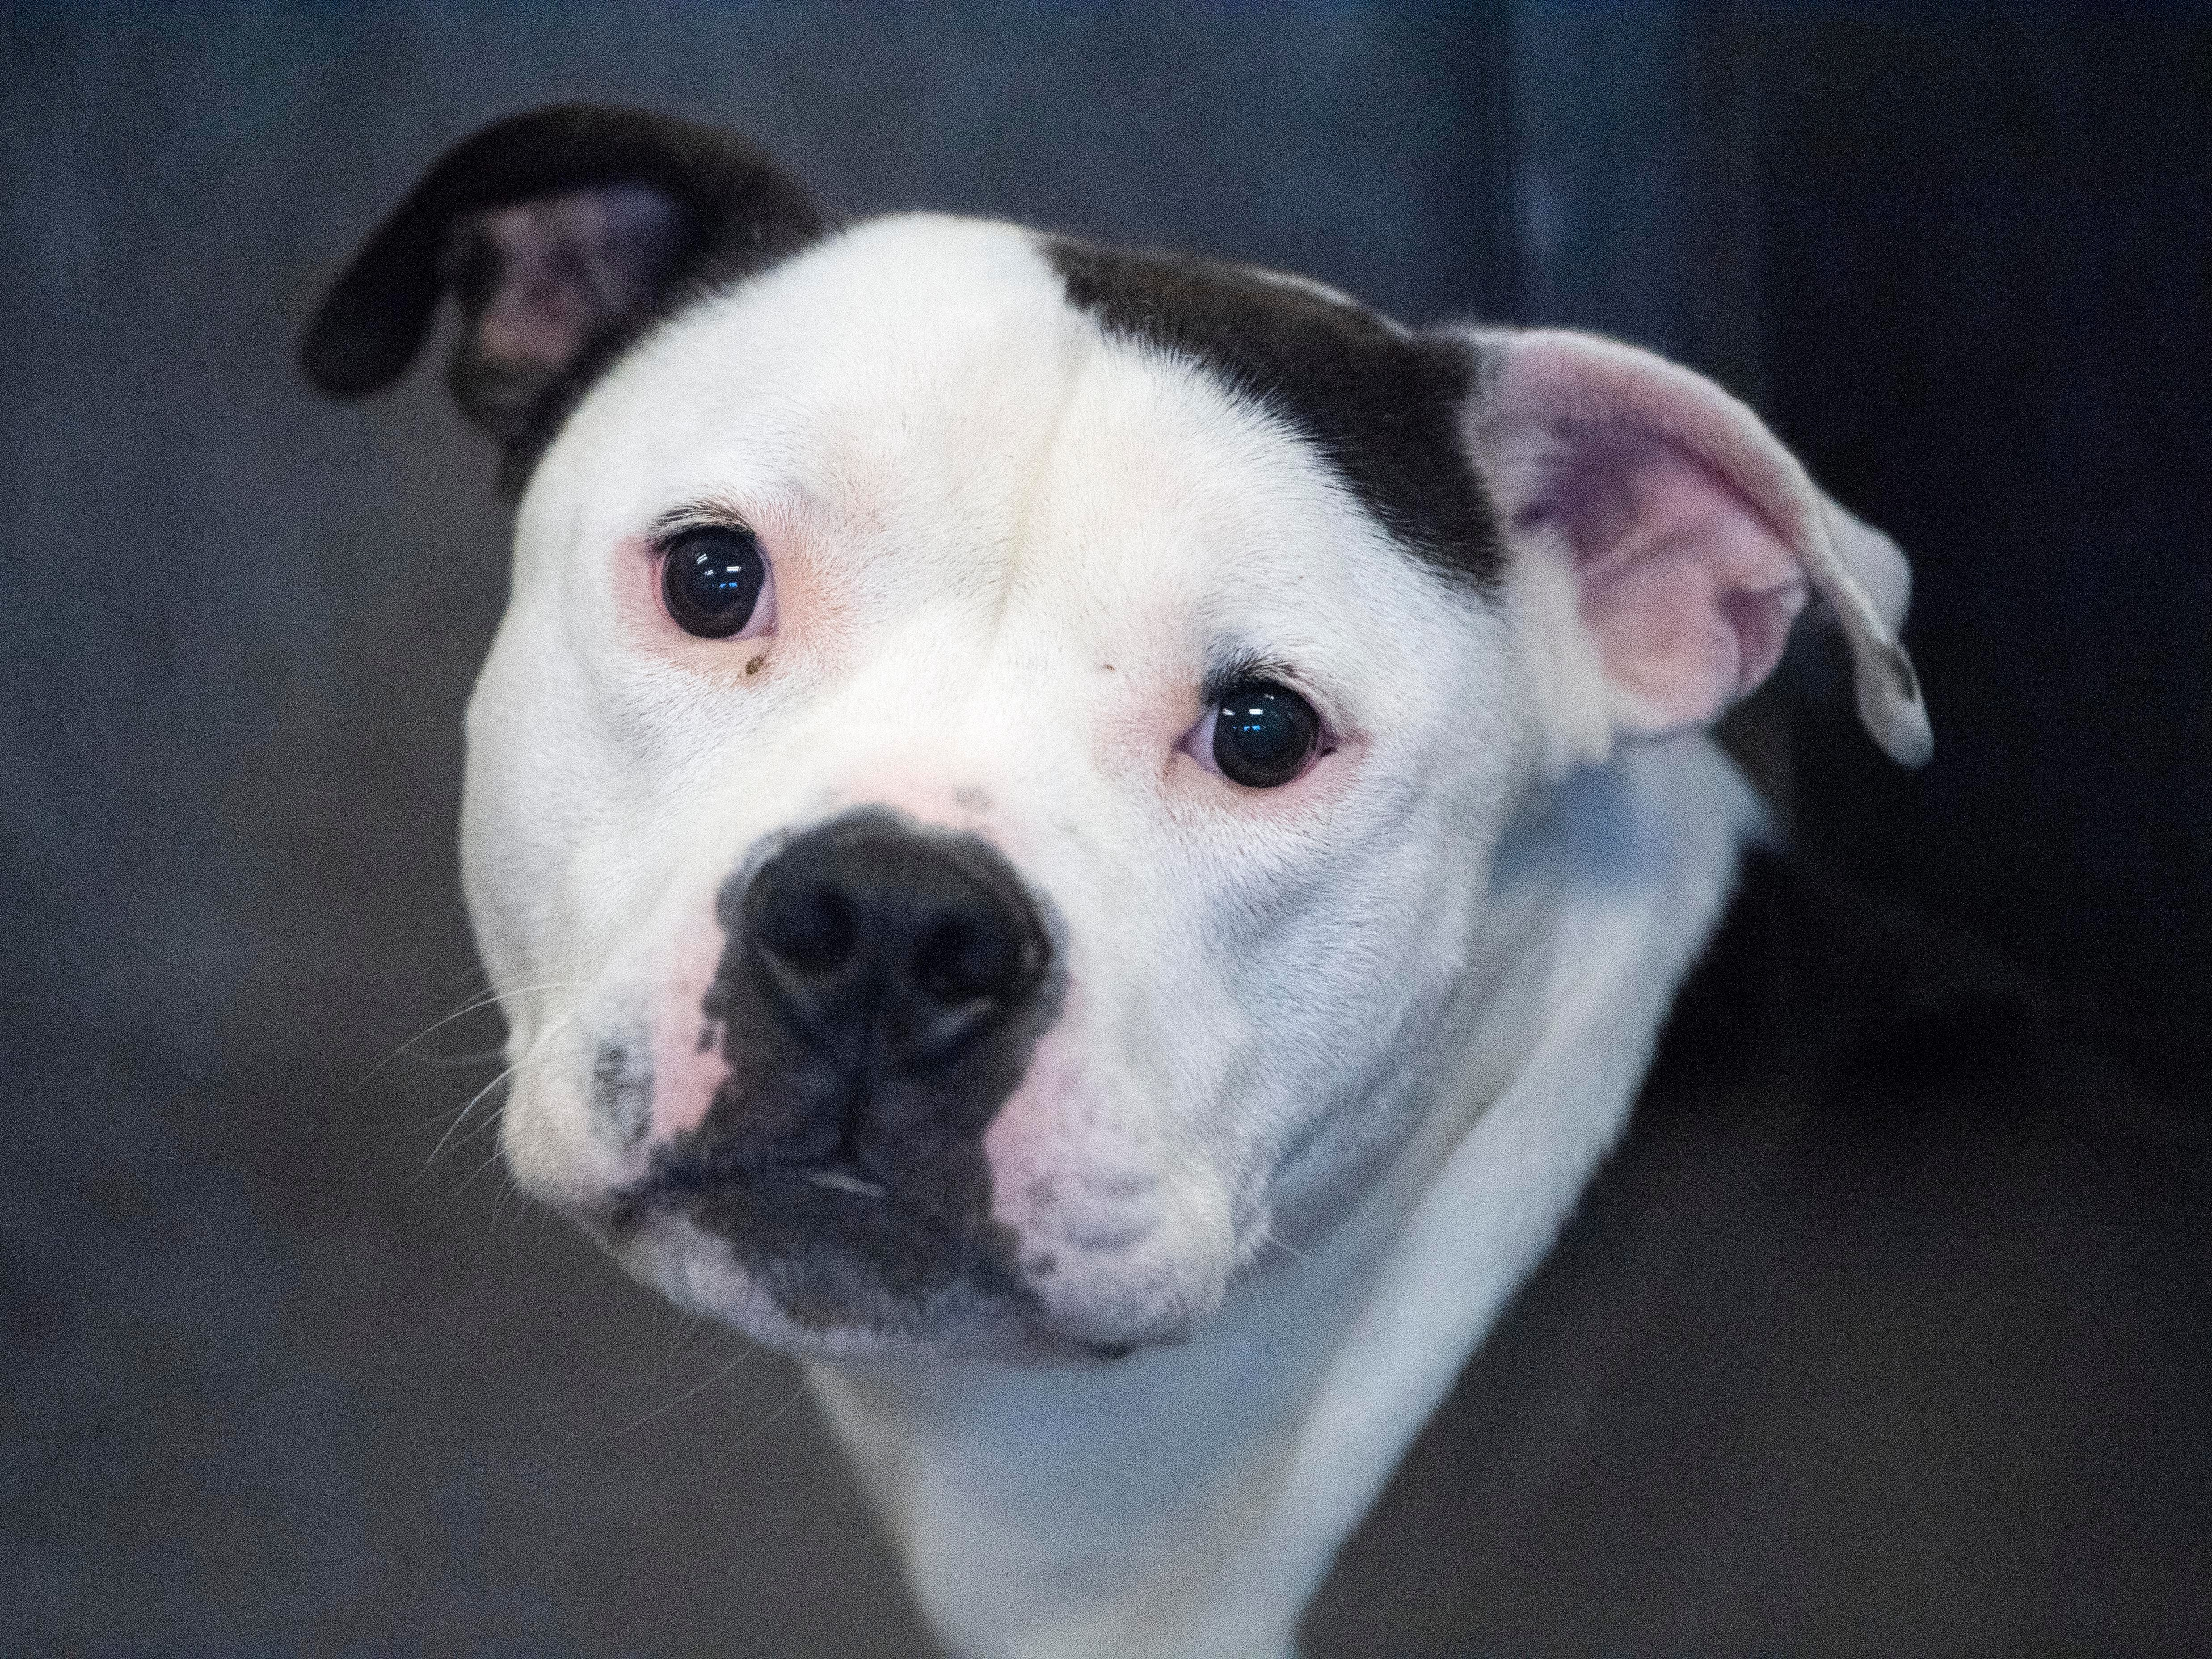 Panda, a 1-year old pit bull terrier, was returned to the shelter for not being able to play properly.